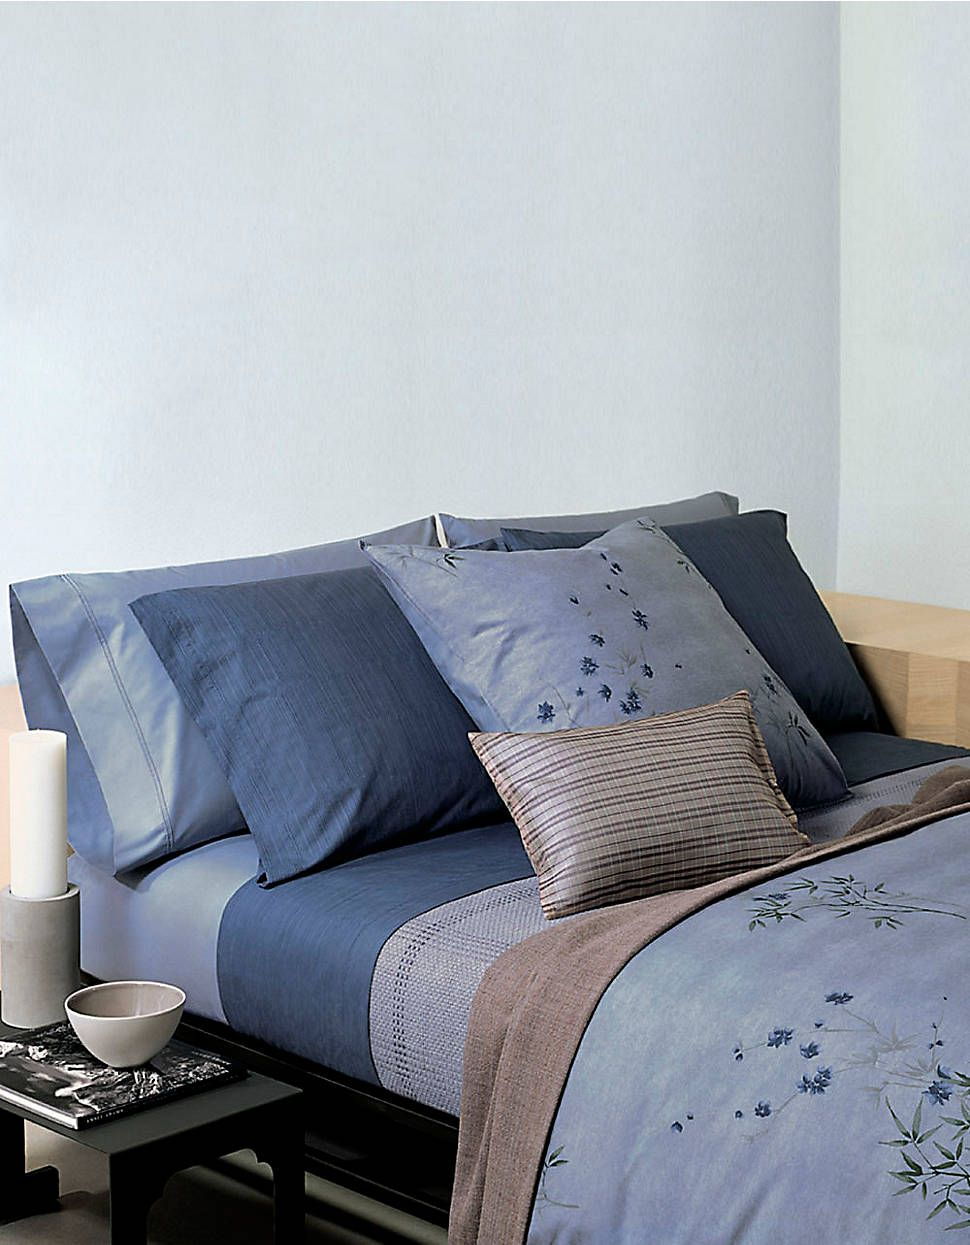 Bamboo Flower Duvet Cover Lord And Taylor Home Decor Decor Home